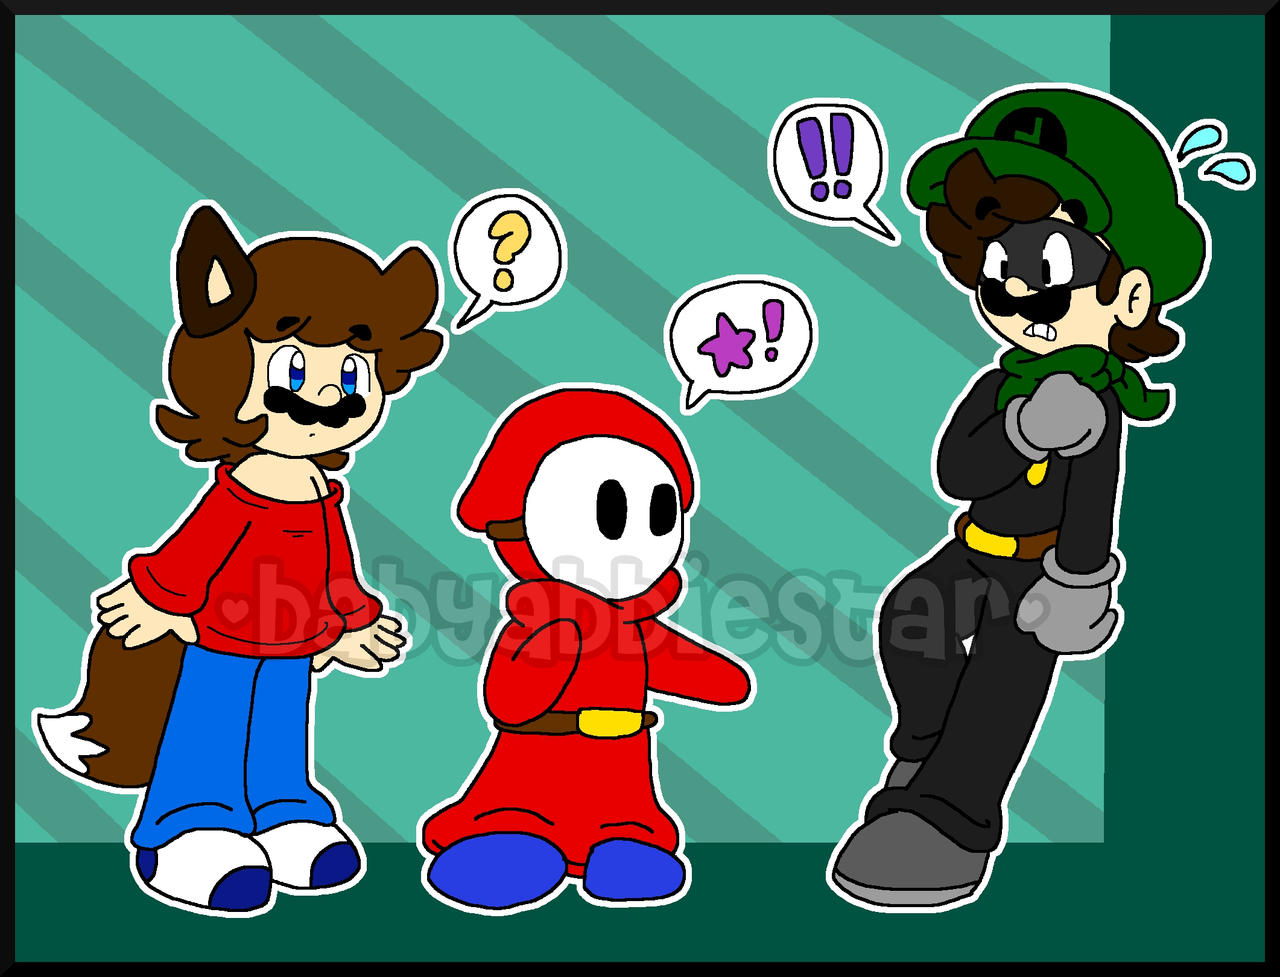 Shy guy guy dating a girl